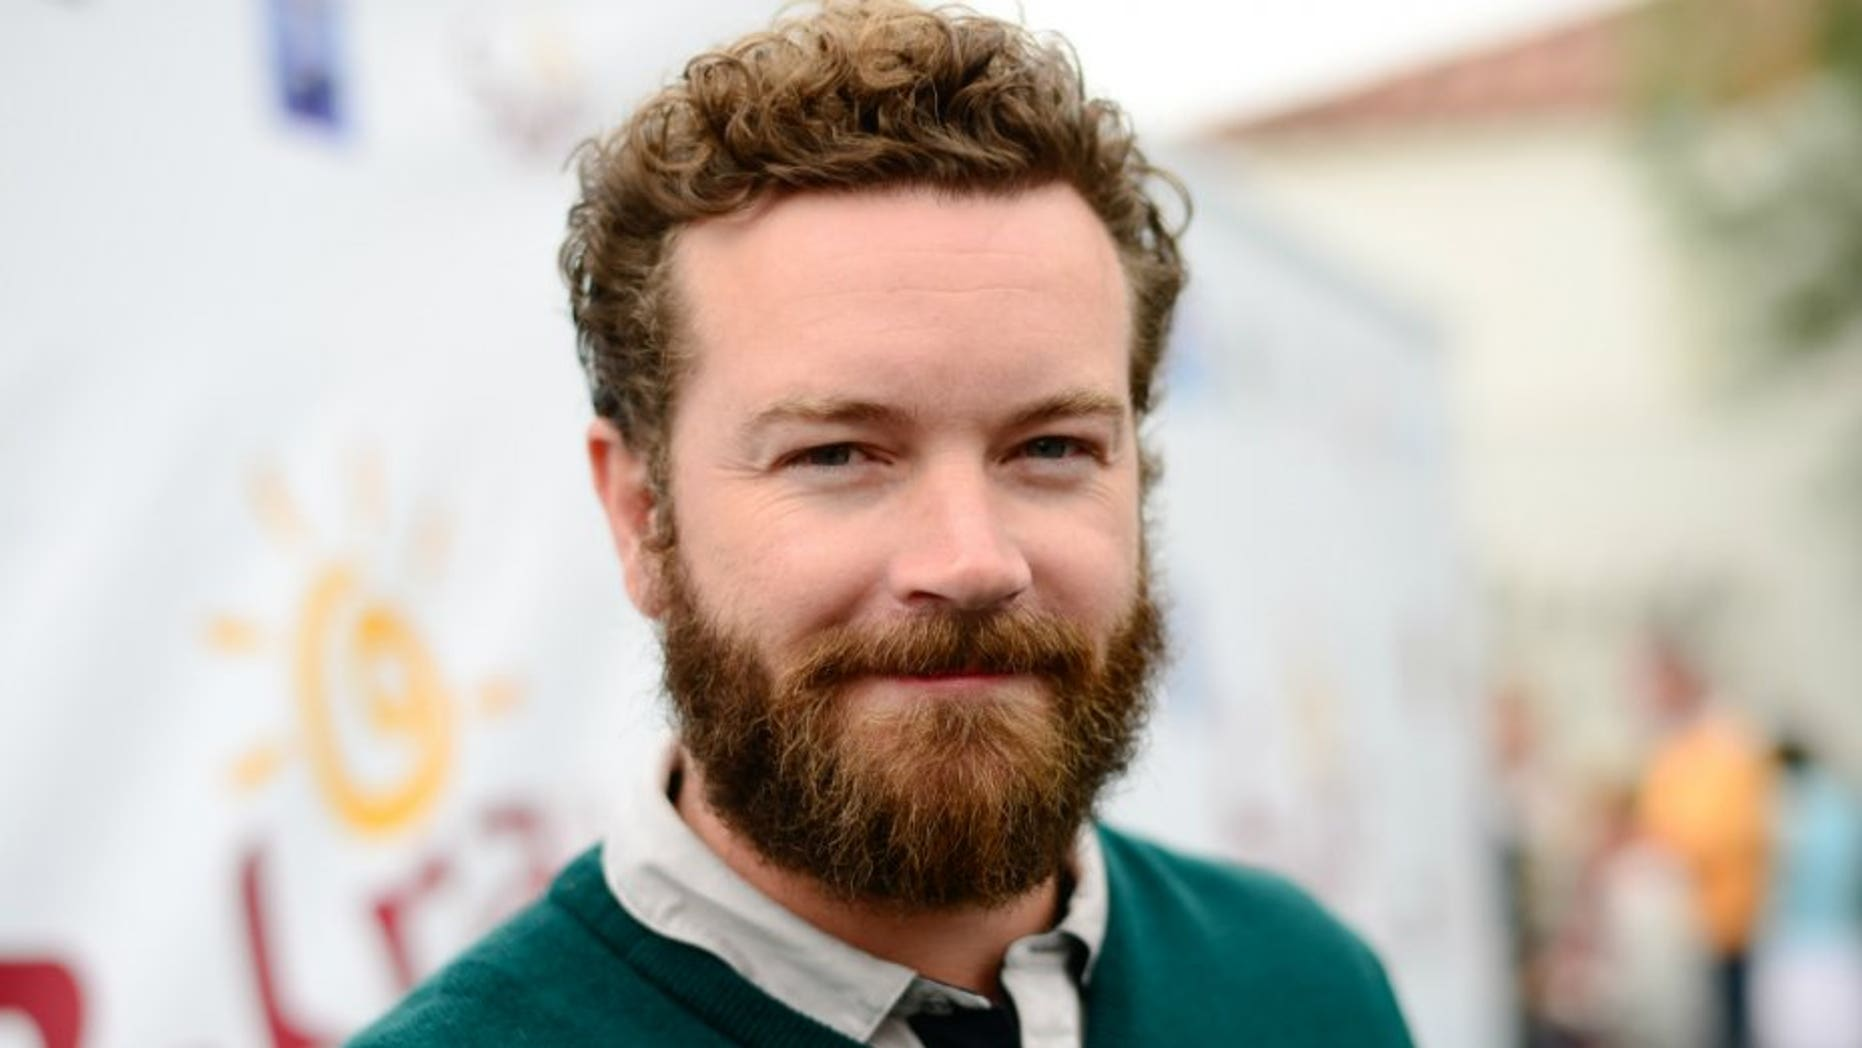 """Danny Masterson's accusers criticized Netflix for airing """"The Ranch"""" with the actor despite him being fired from the series last year following rape allegations."""